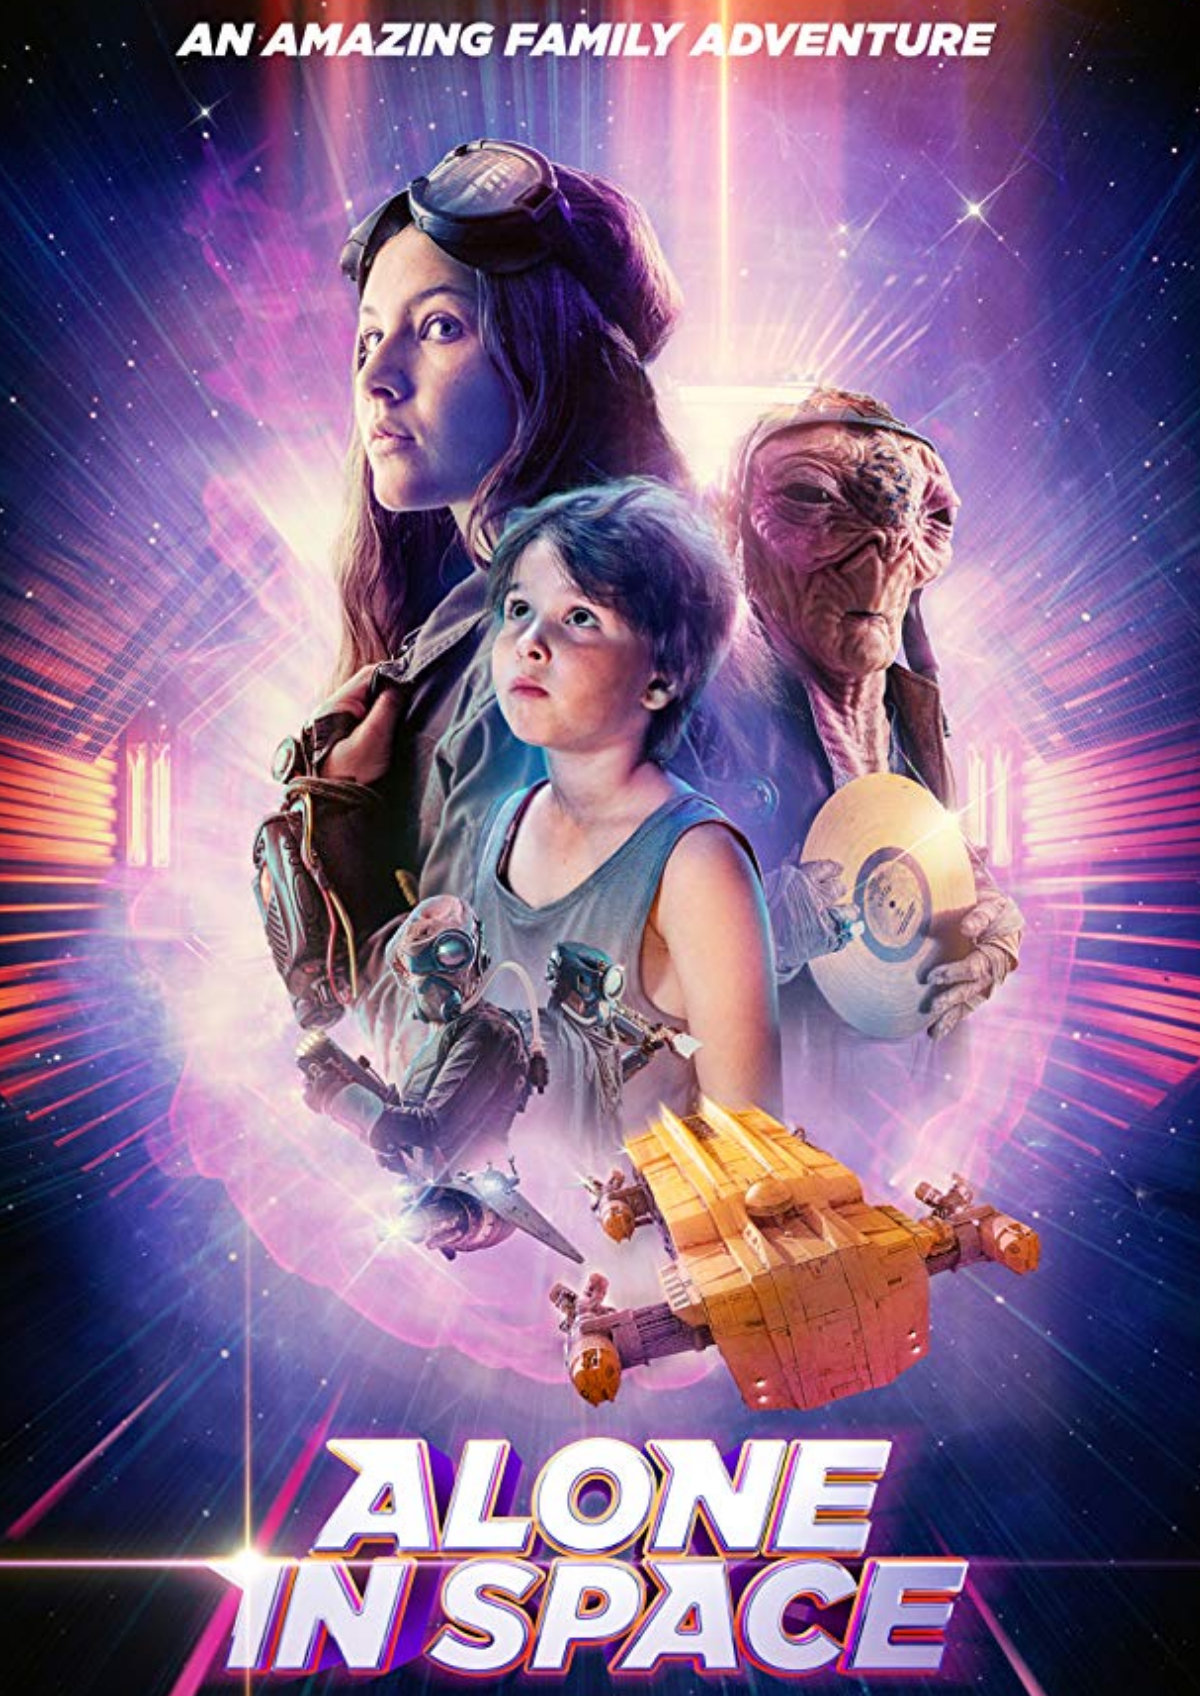 'Alone In Space' movie poster